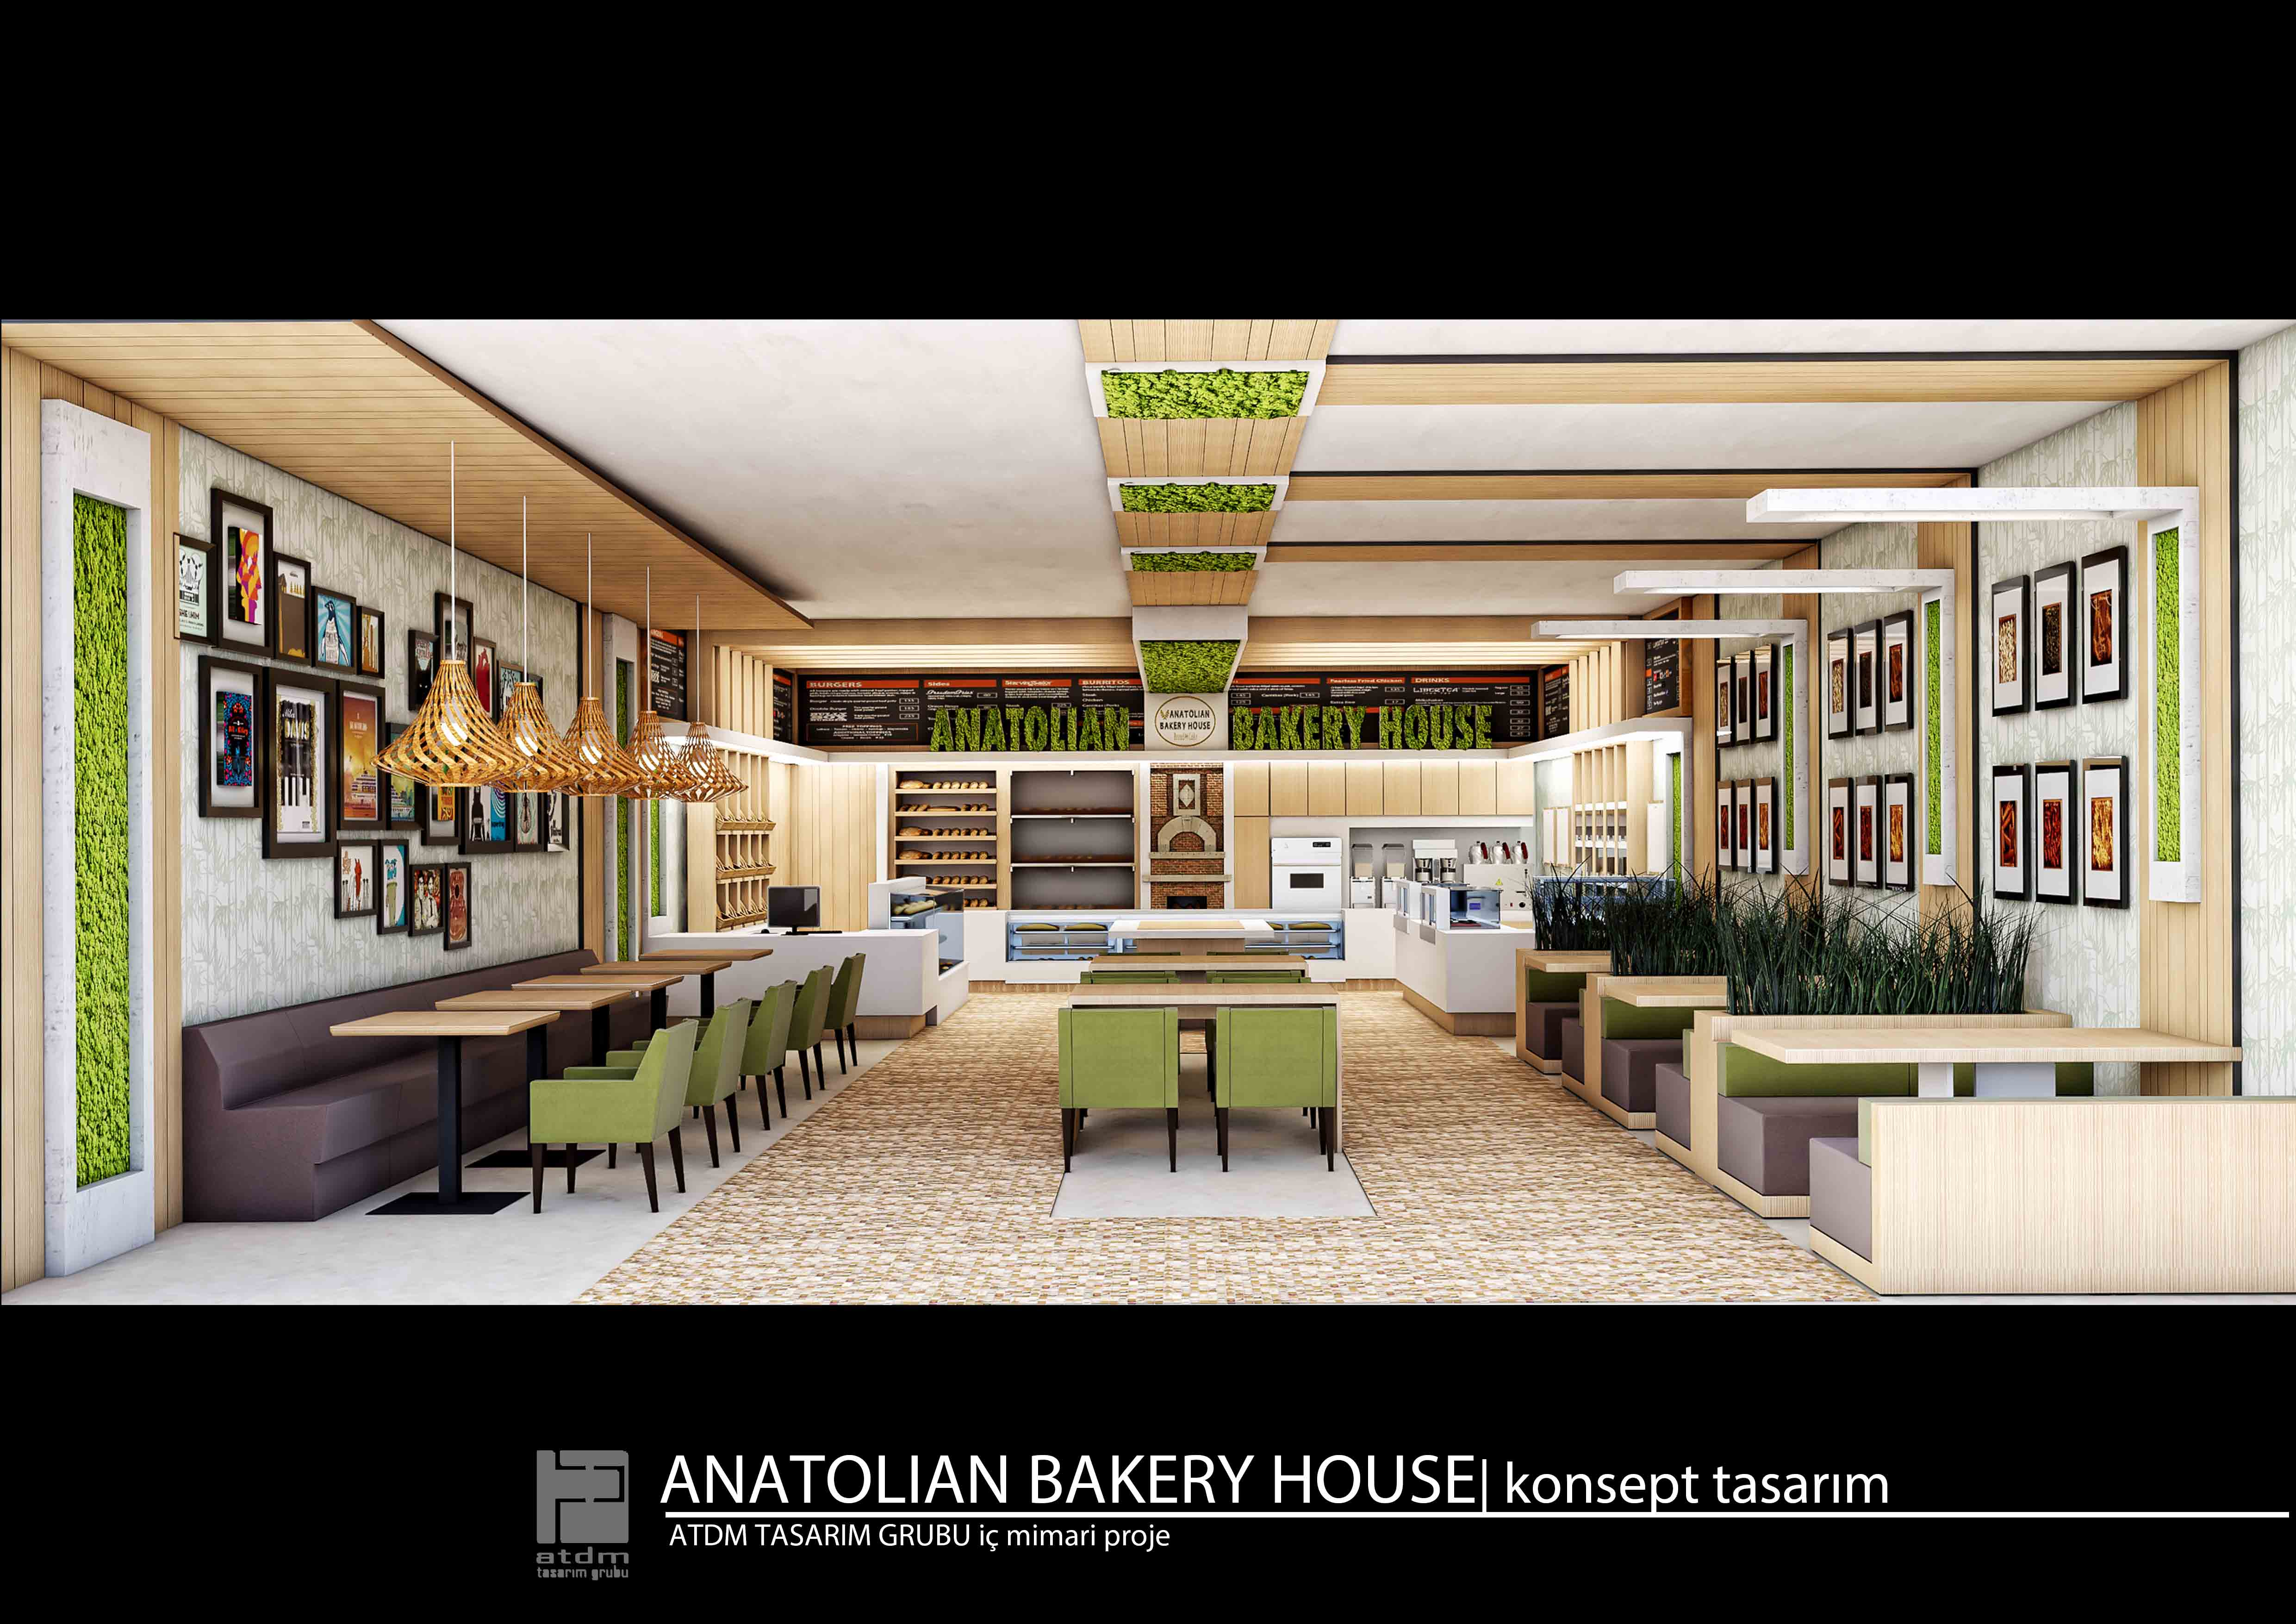 Anatolian Bakery House